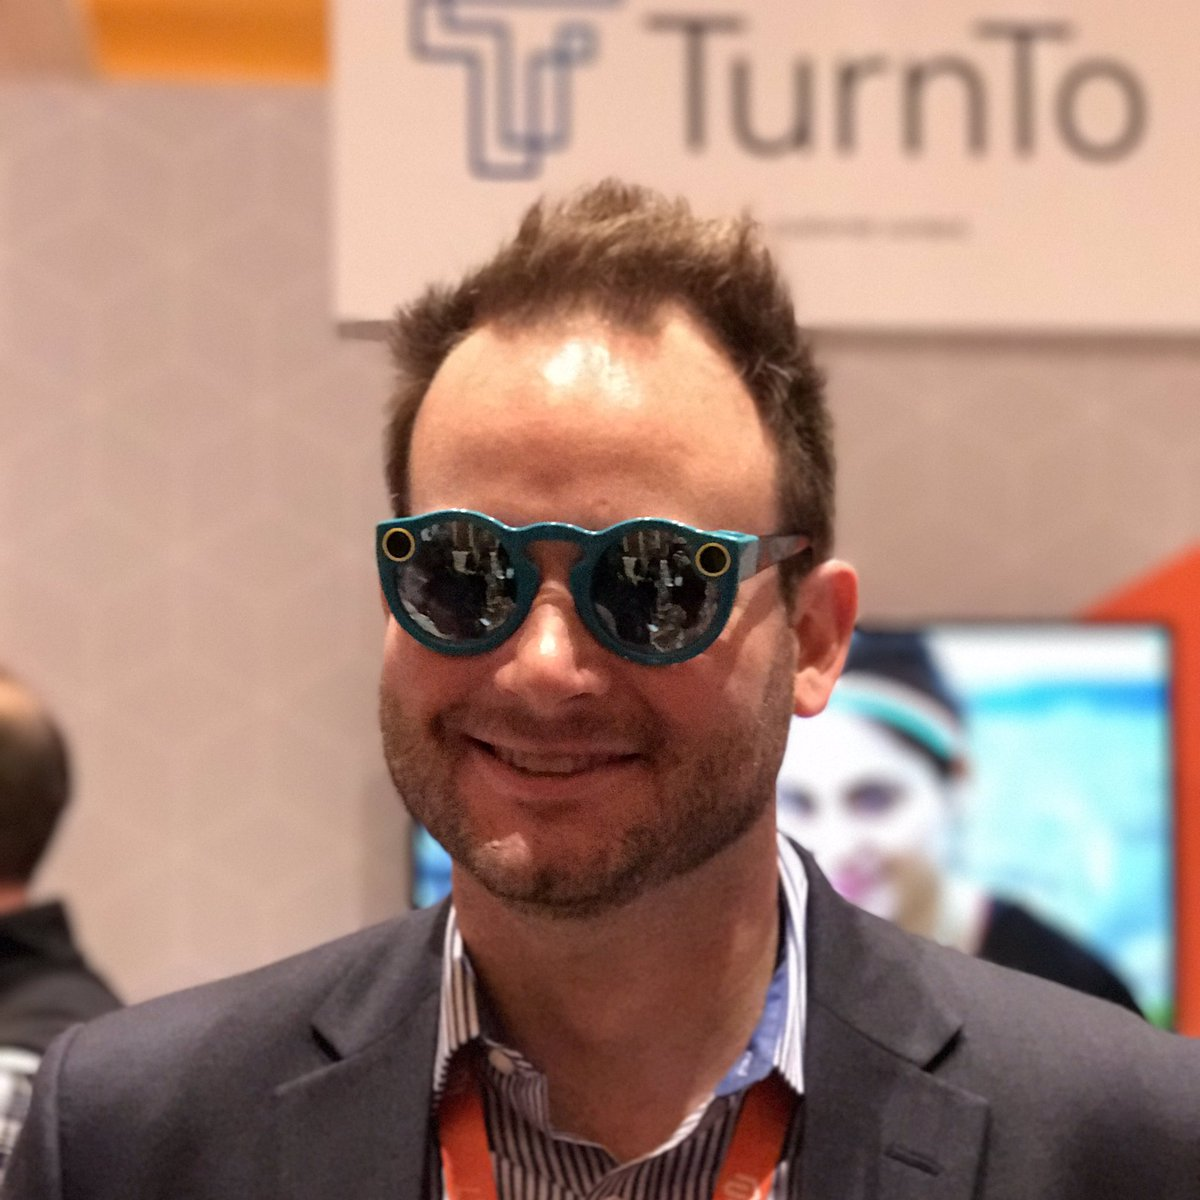 TurnTo: 😎You too could look this charming if you win our Snapchat Spectacles drawing at booth 519 at #MagentoImagine https://t.co/oCuA6cSpCW